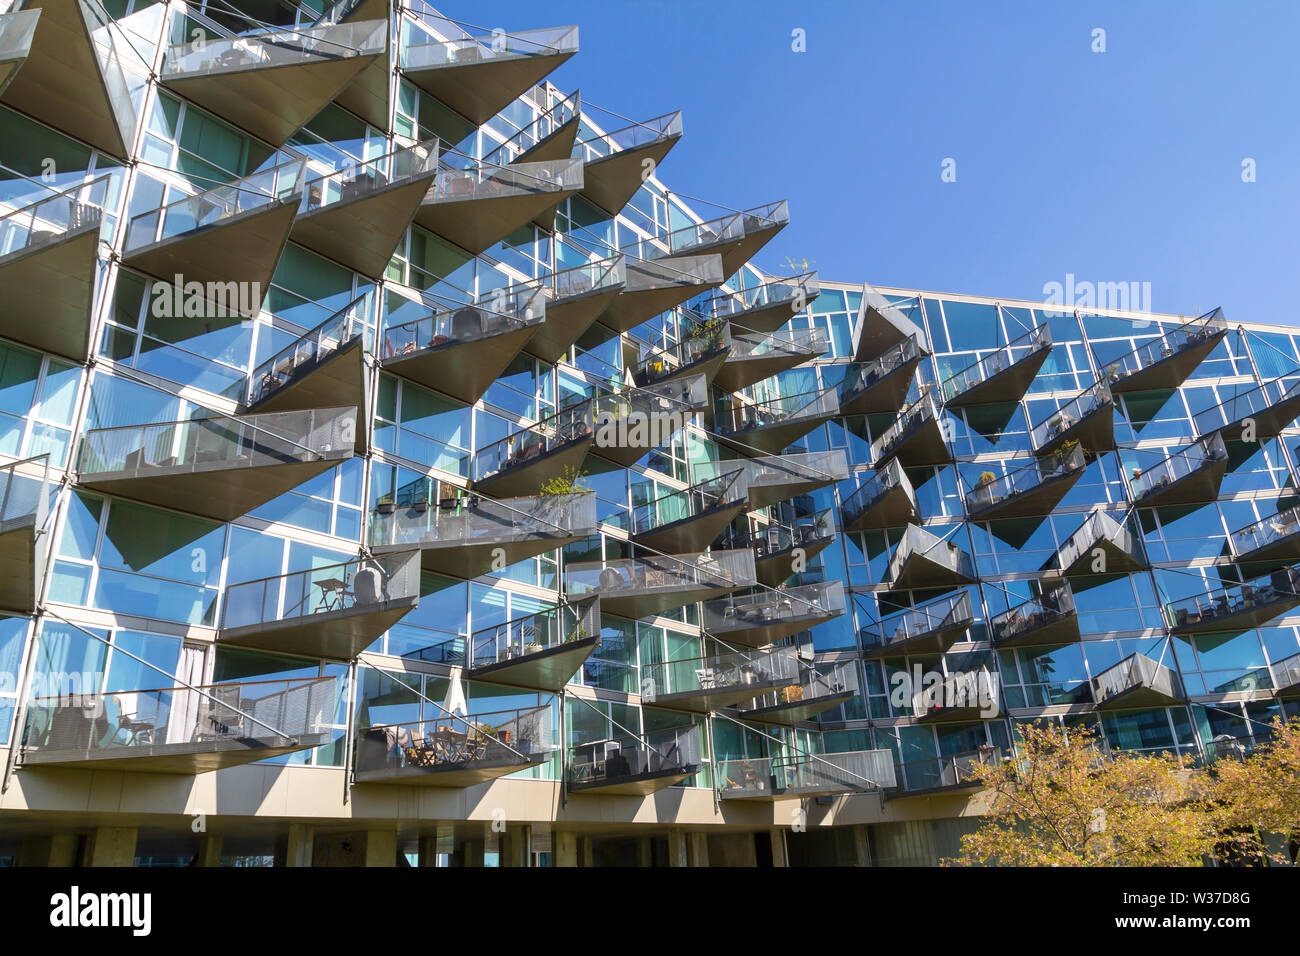 Modern architecture building in Orestad, Copenhagen, with triangular balconies in a glass facade Stock Photo